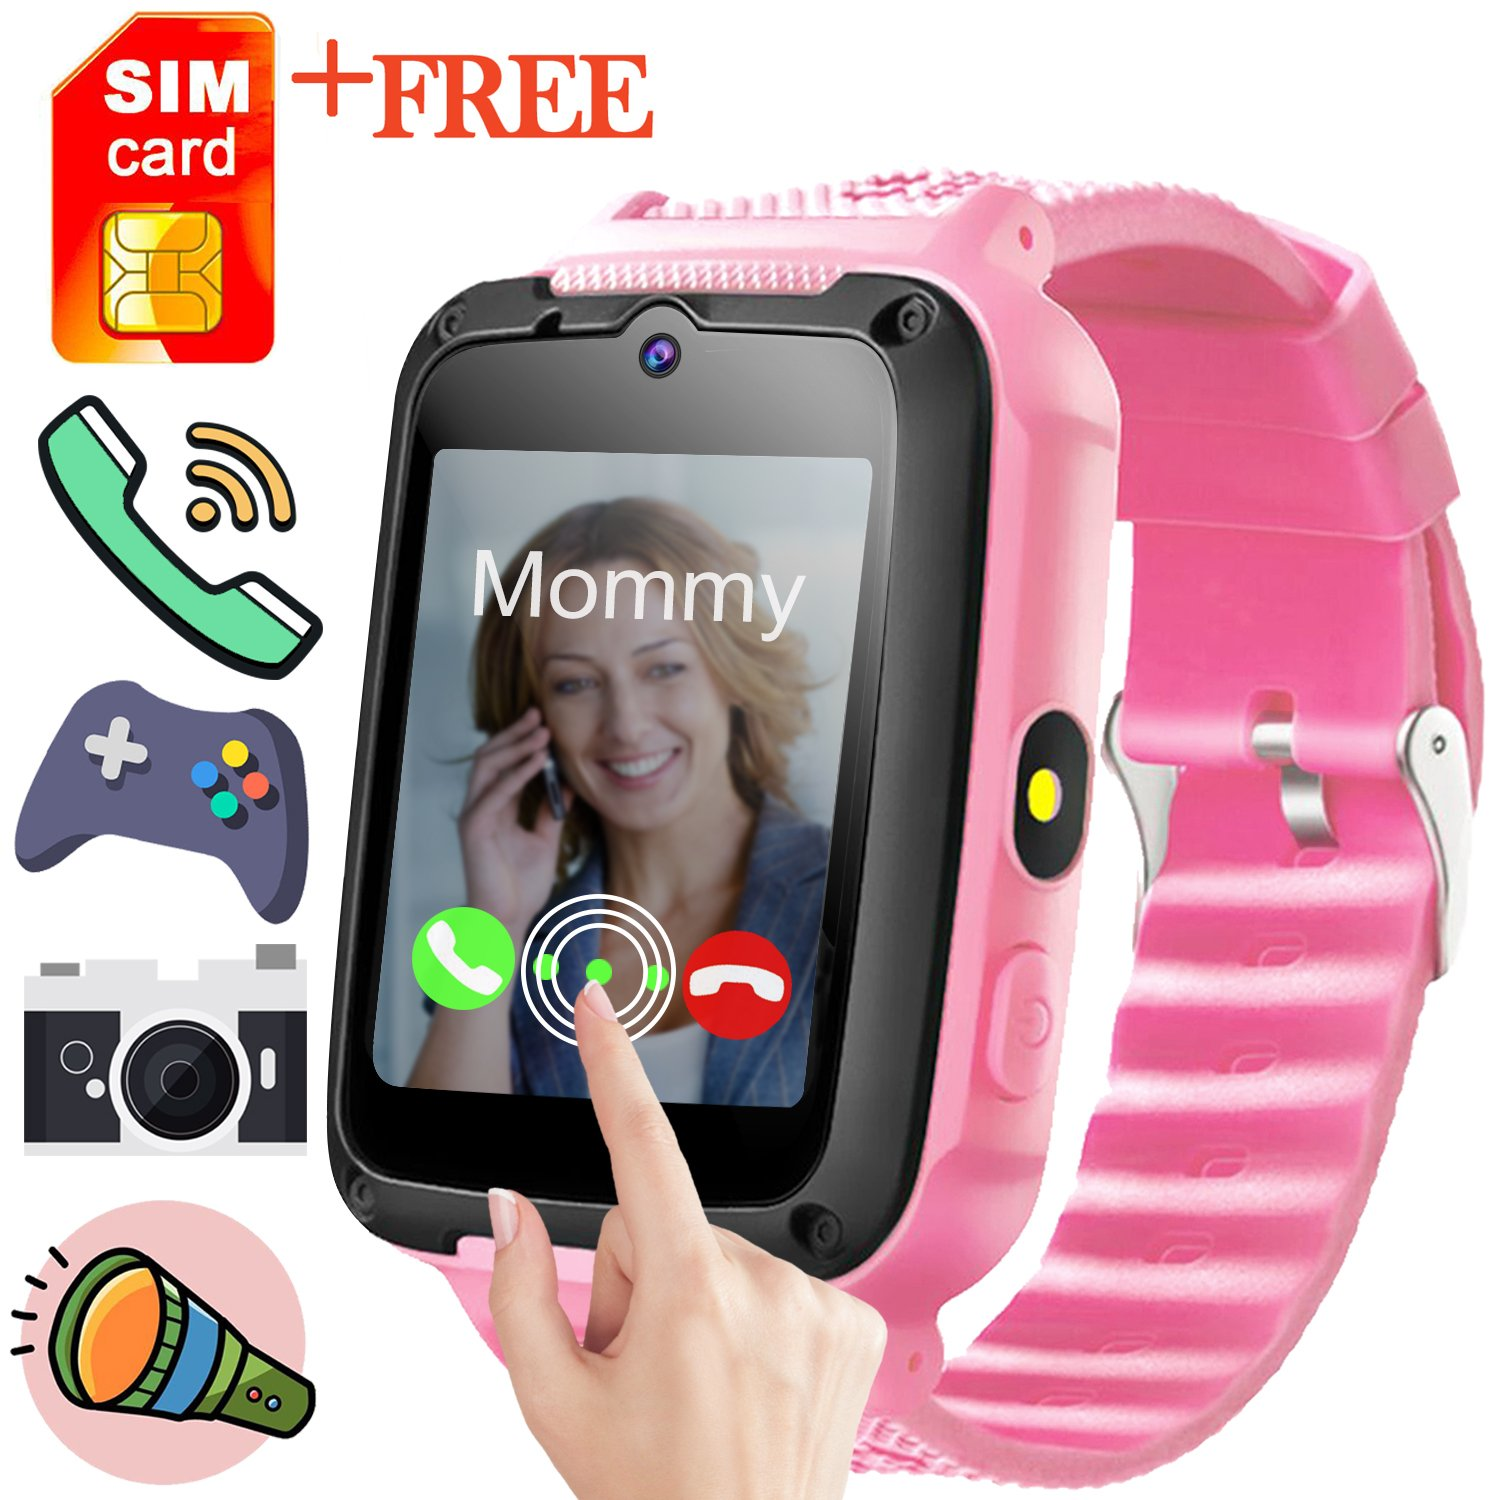 Smart Watch for Kids-GBD Kids Smartwatch Phone for Girls Boys with Free SIM (SpeedTalk) Card Game Camera Digital Wrist Watch Bracelet Electronic Learning Toys Summer Travel Birthday Gifts (Pink)